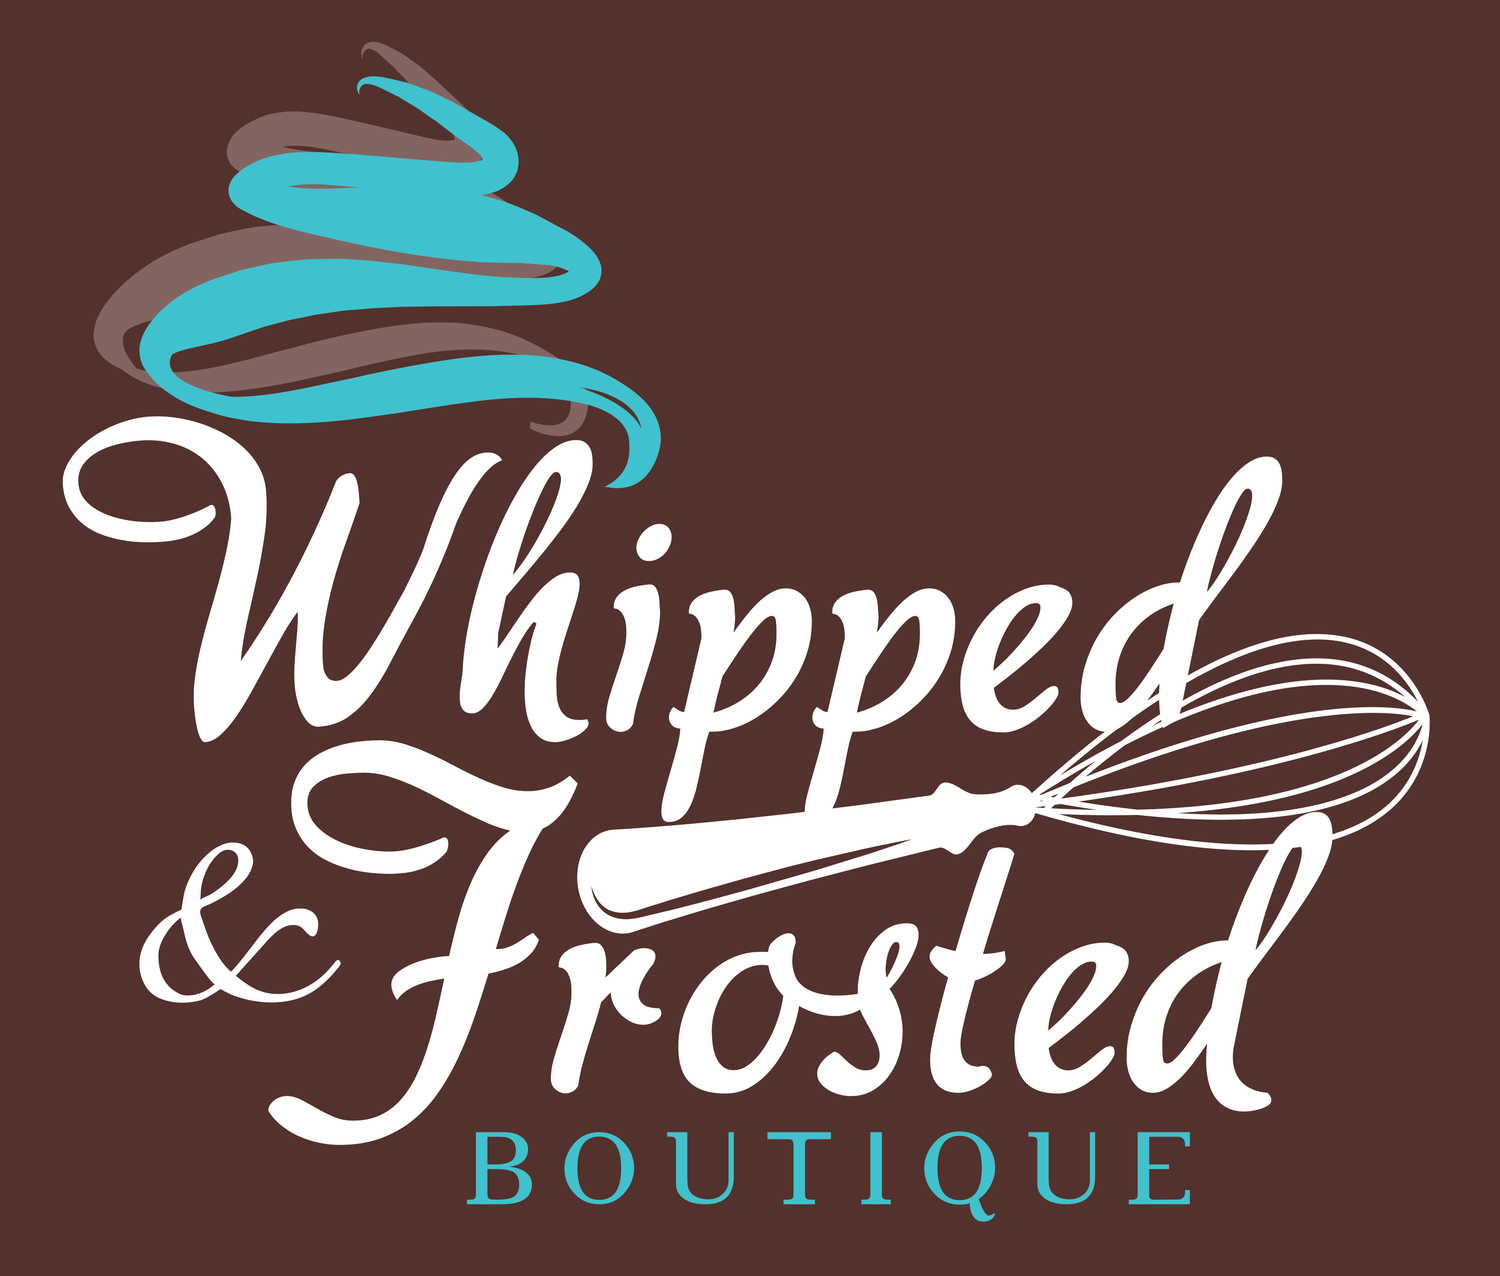 Whipped & Frosted Boutique